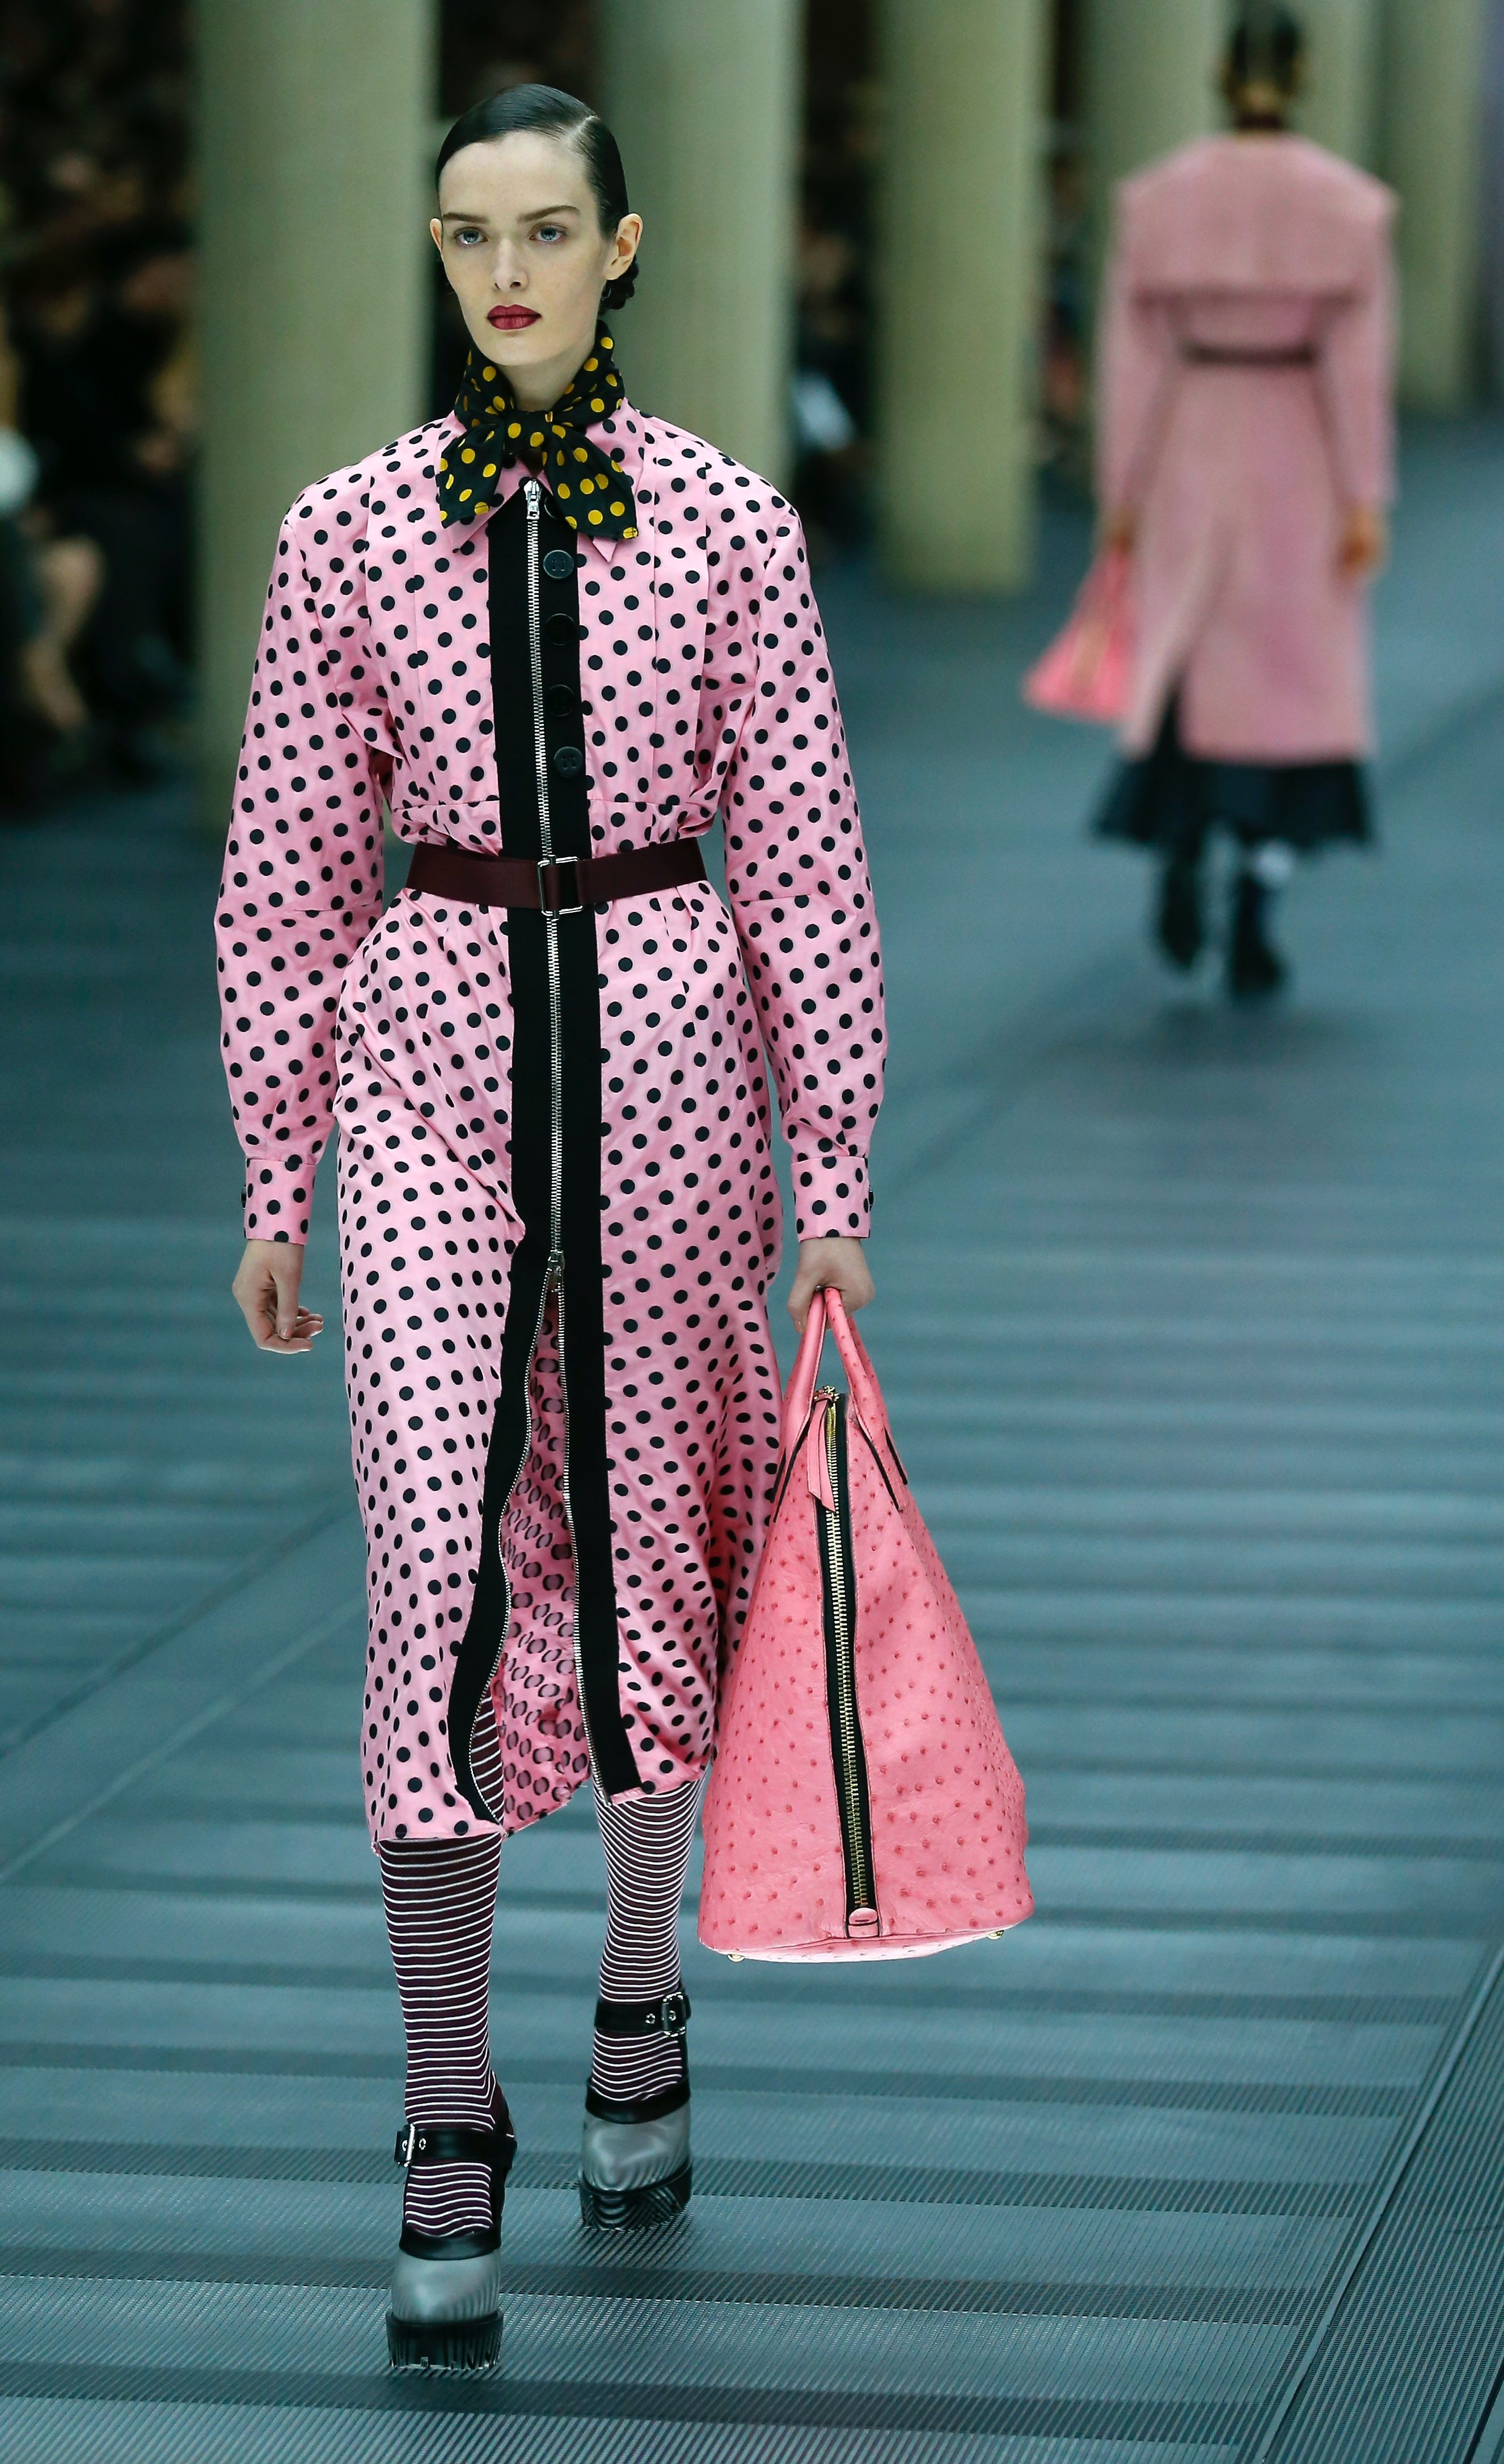 Miu Miu A/W 2013 | Source: Associated Press